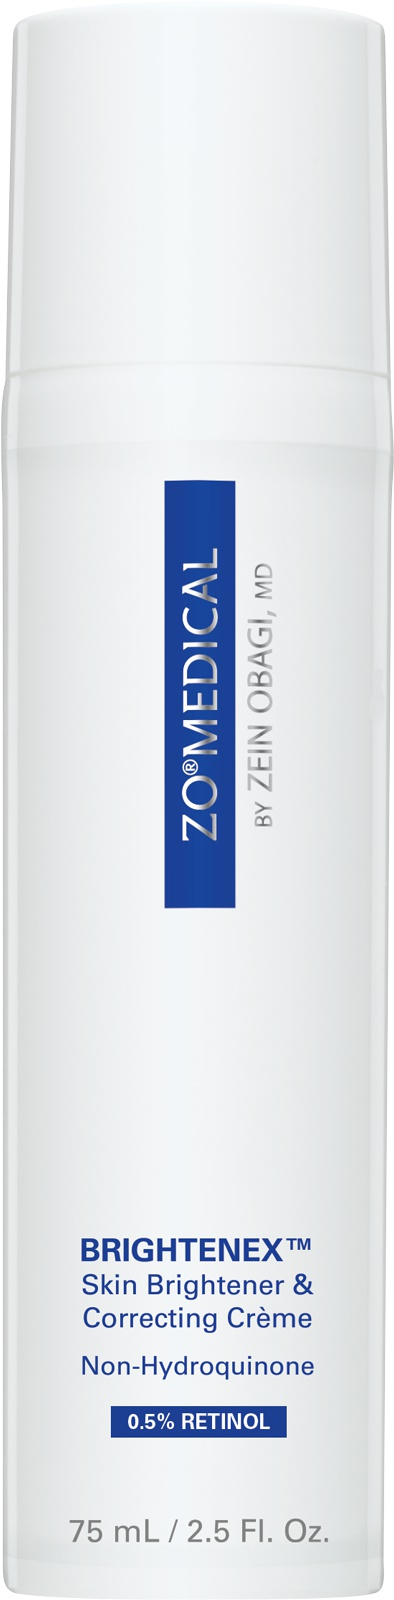 Zo skin health Brightenex™ 0.5% Retinol